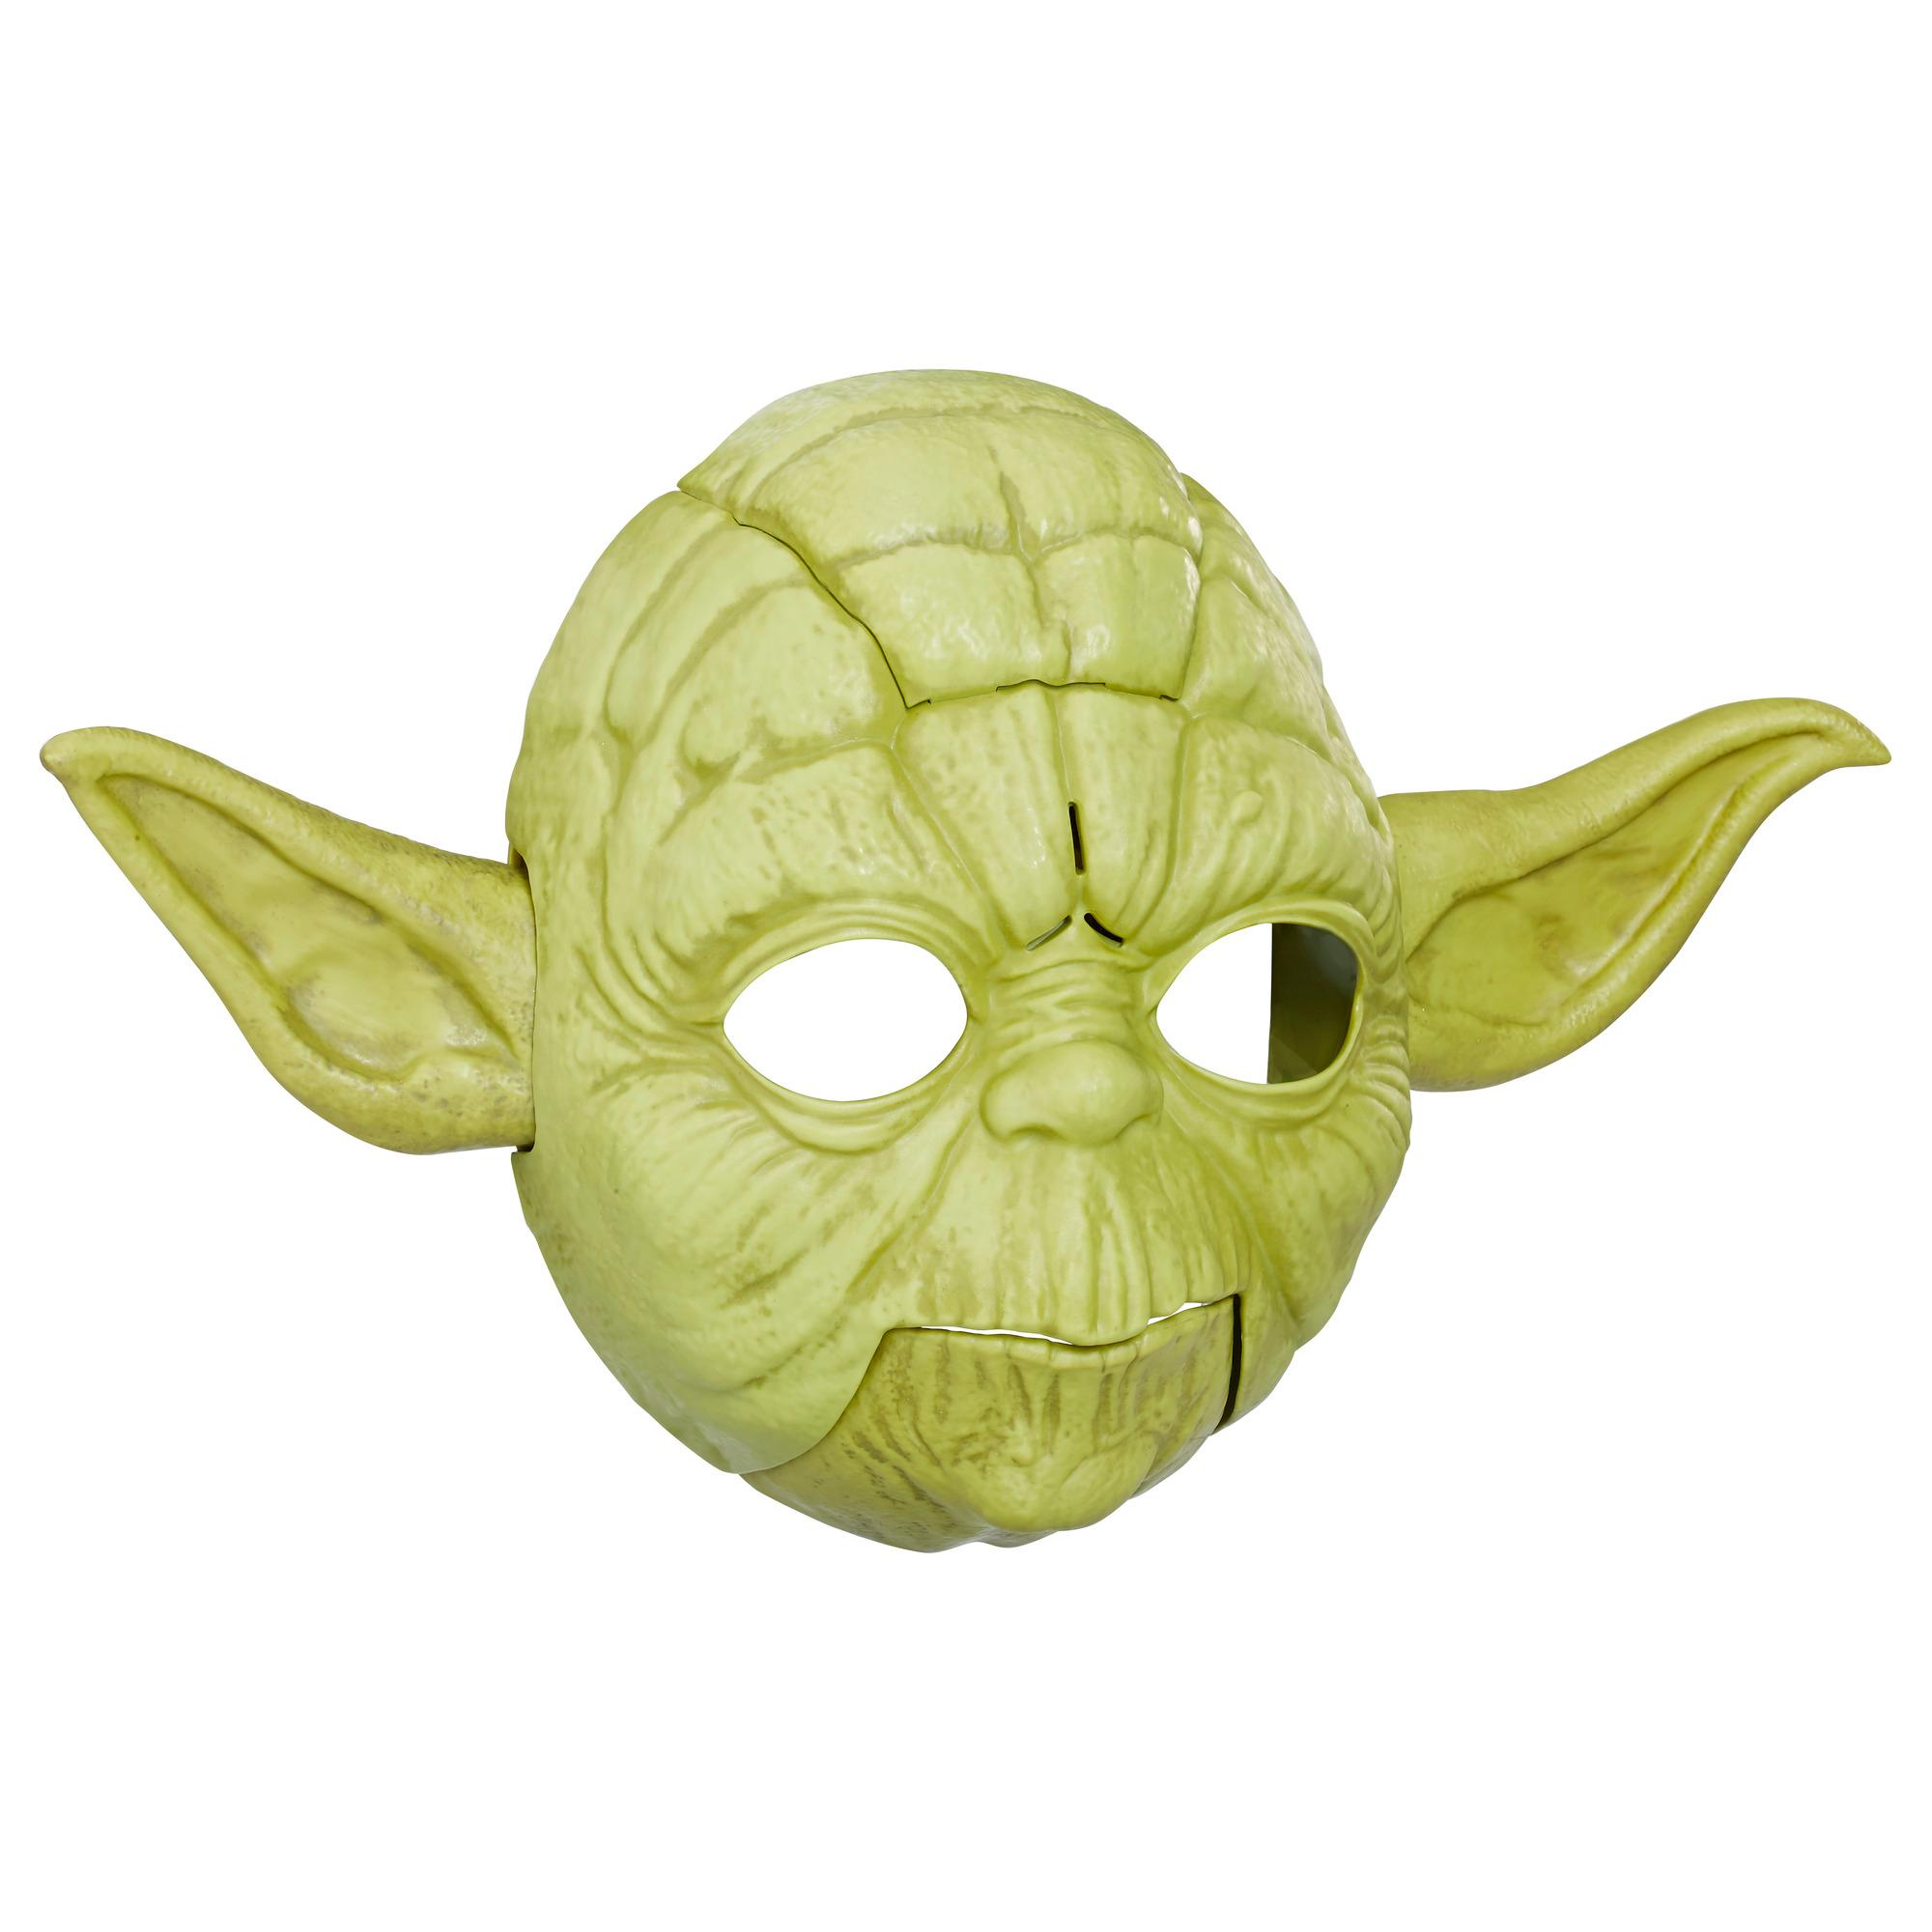 Star Wars : L'empire contre-attaque - Masque électronique de Yoda